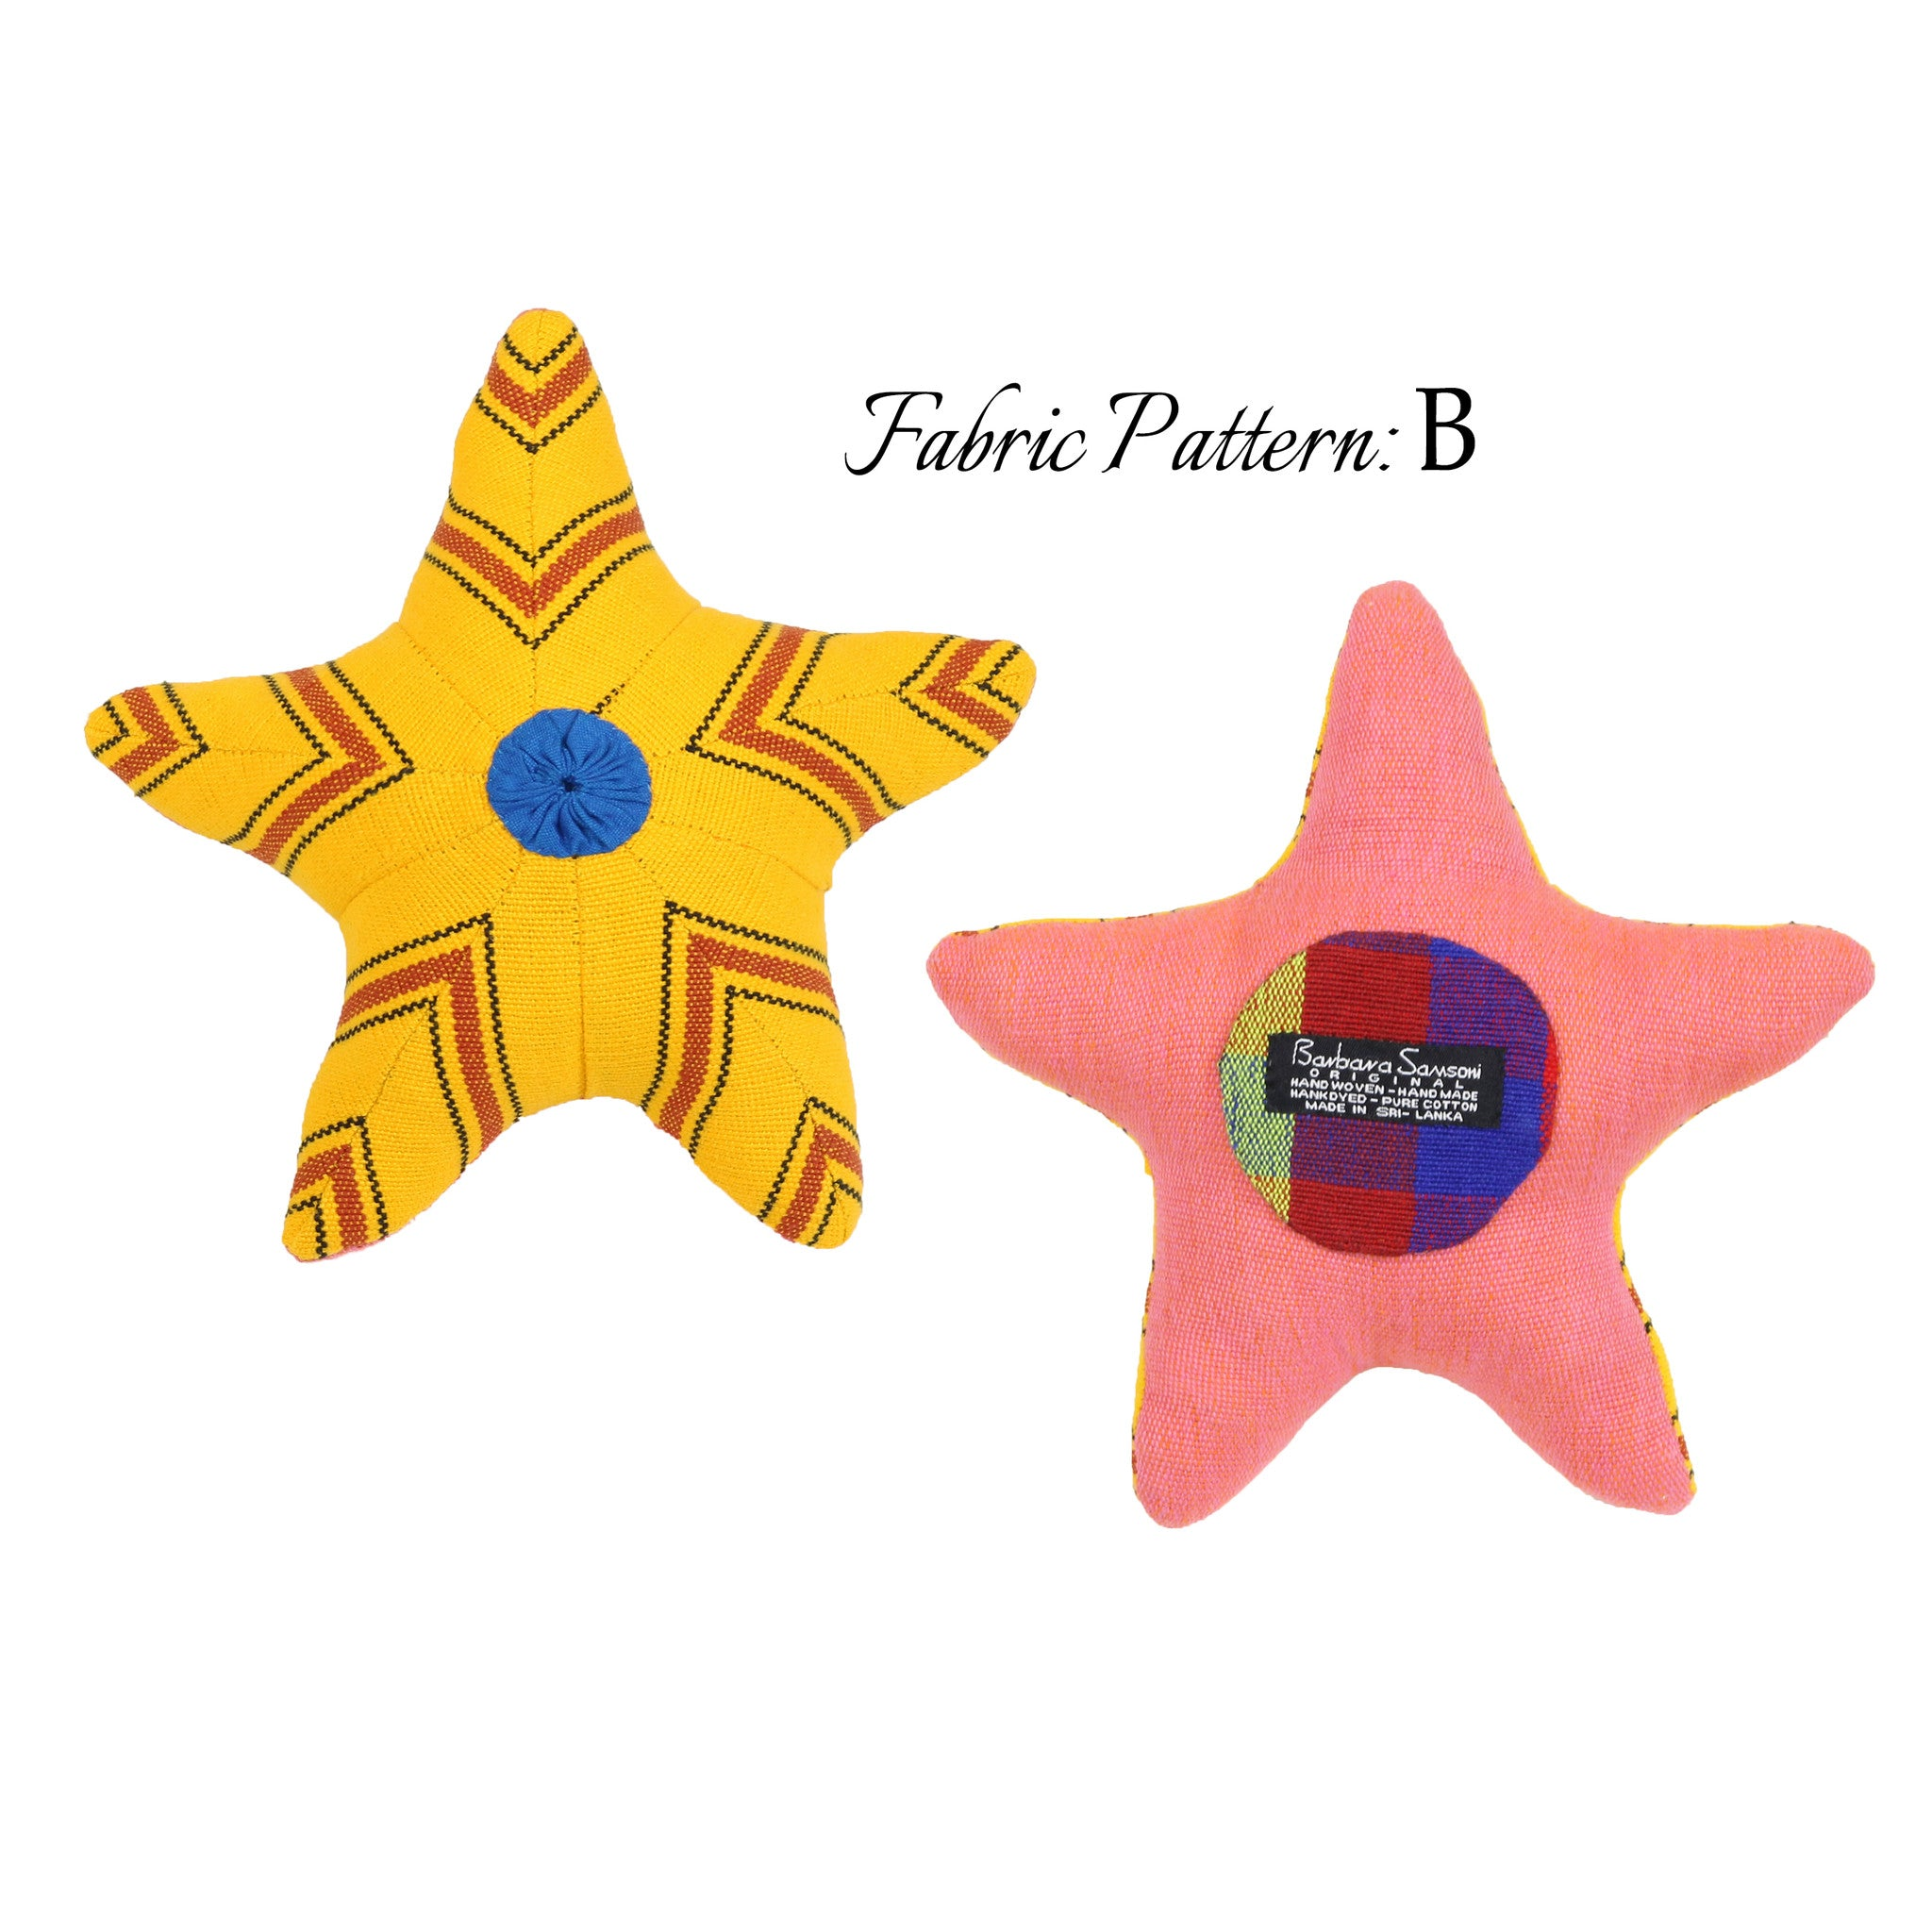 Sunny, the Starfish – pattern B (front & back view)